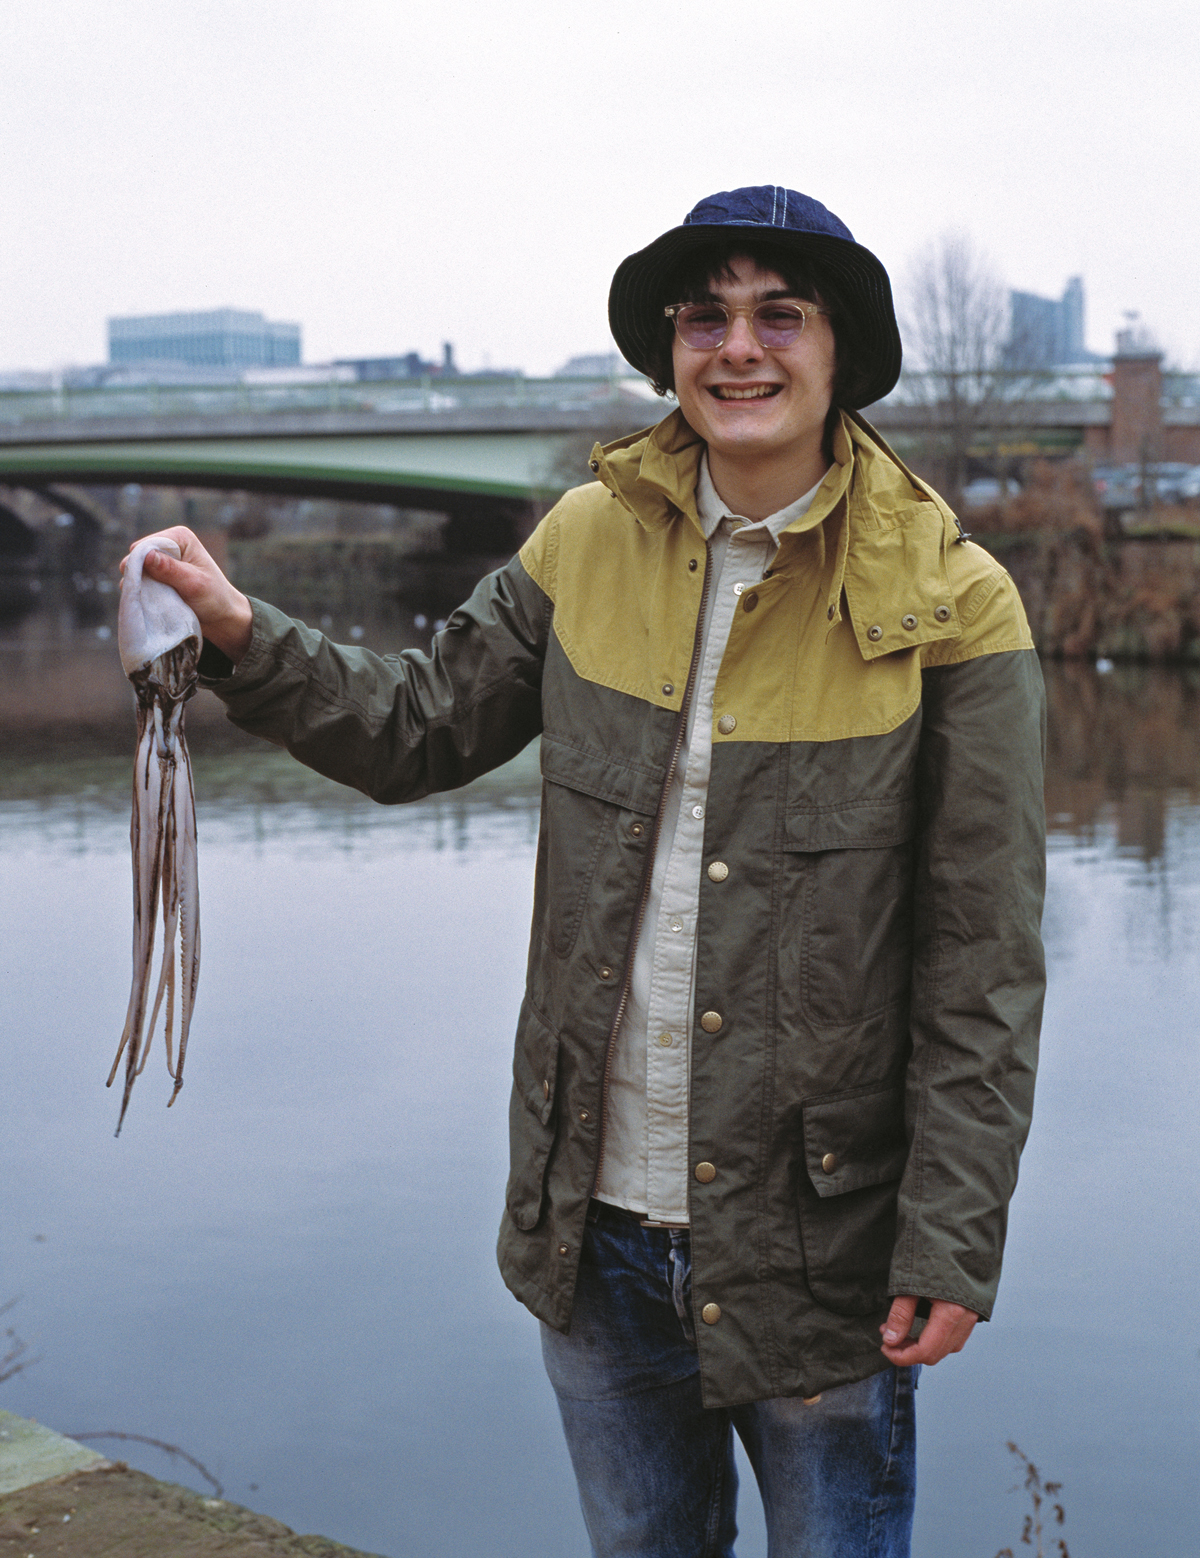 Hat by Beams+, jacket by Barbour, shirt by Levi's Vintage Clothing, squid – model's own